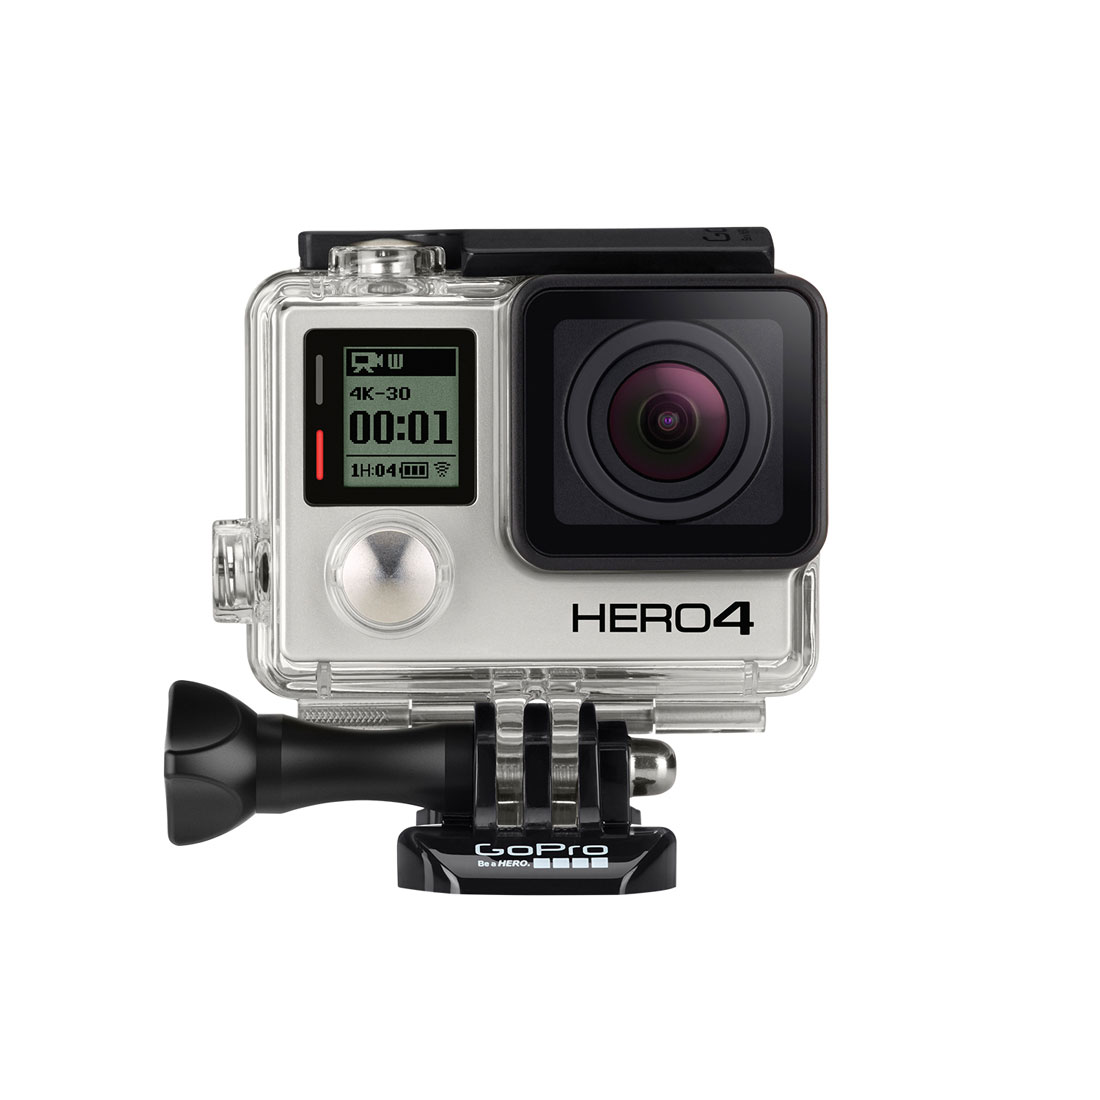 La caméra d'action GoPro Hero4 Black.